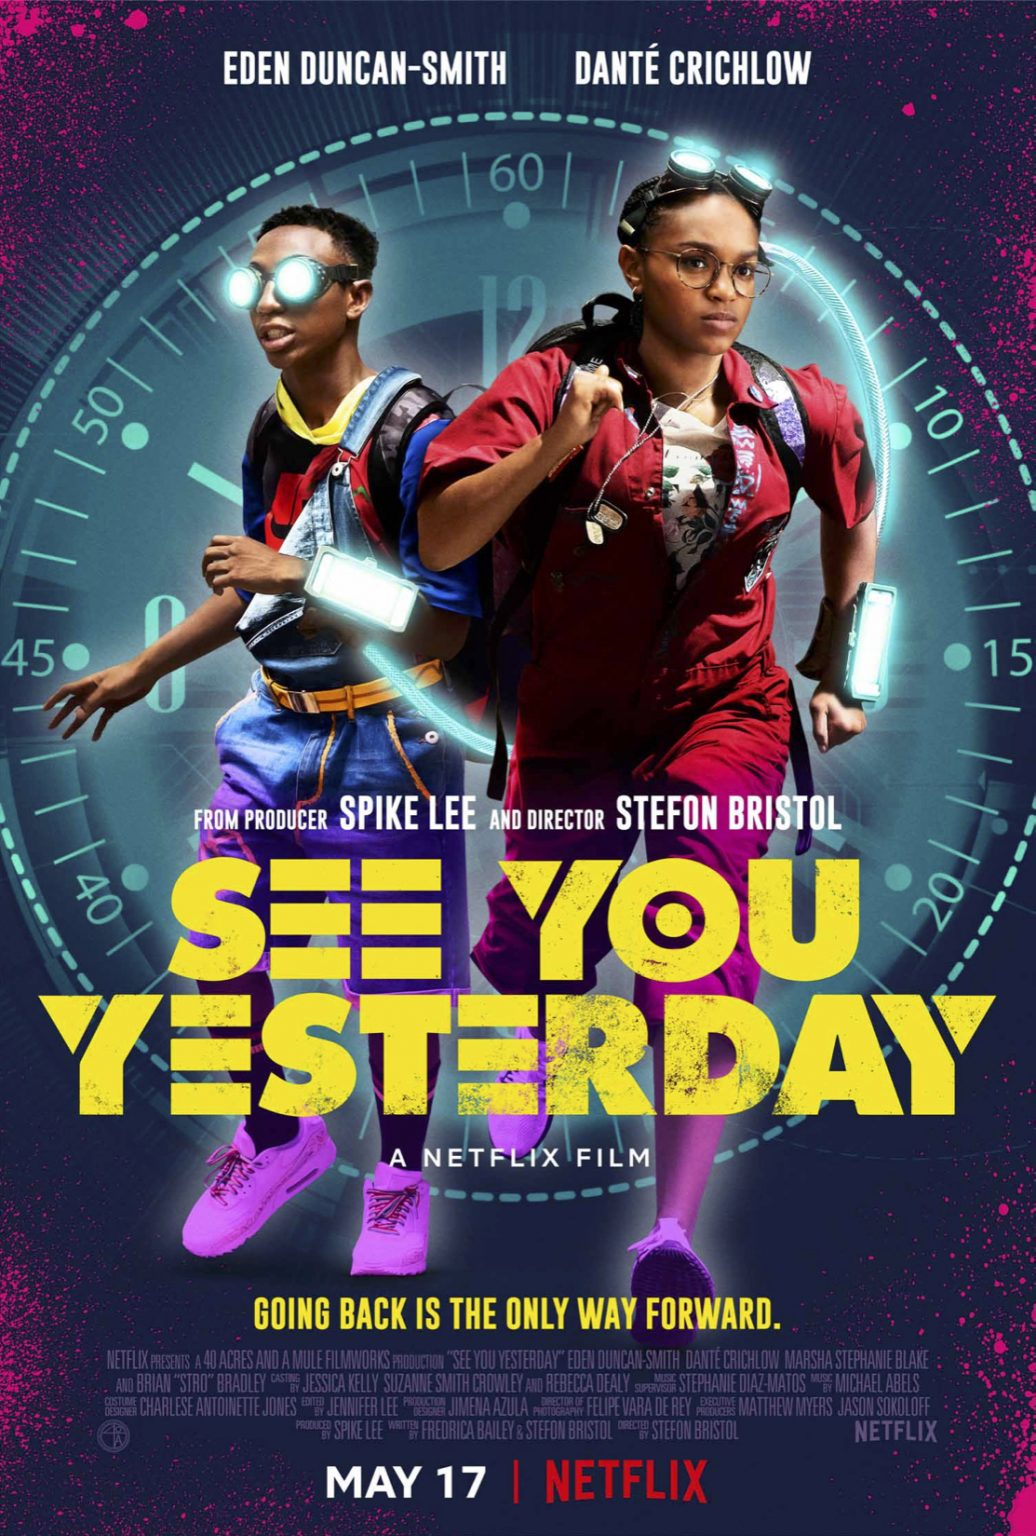 Must See This Film Could Help You >> Sci Fi With Something To Say See You Yesterday Is A Must See